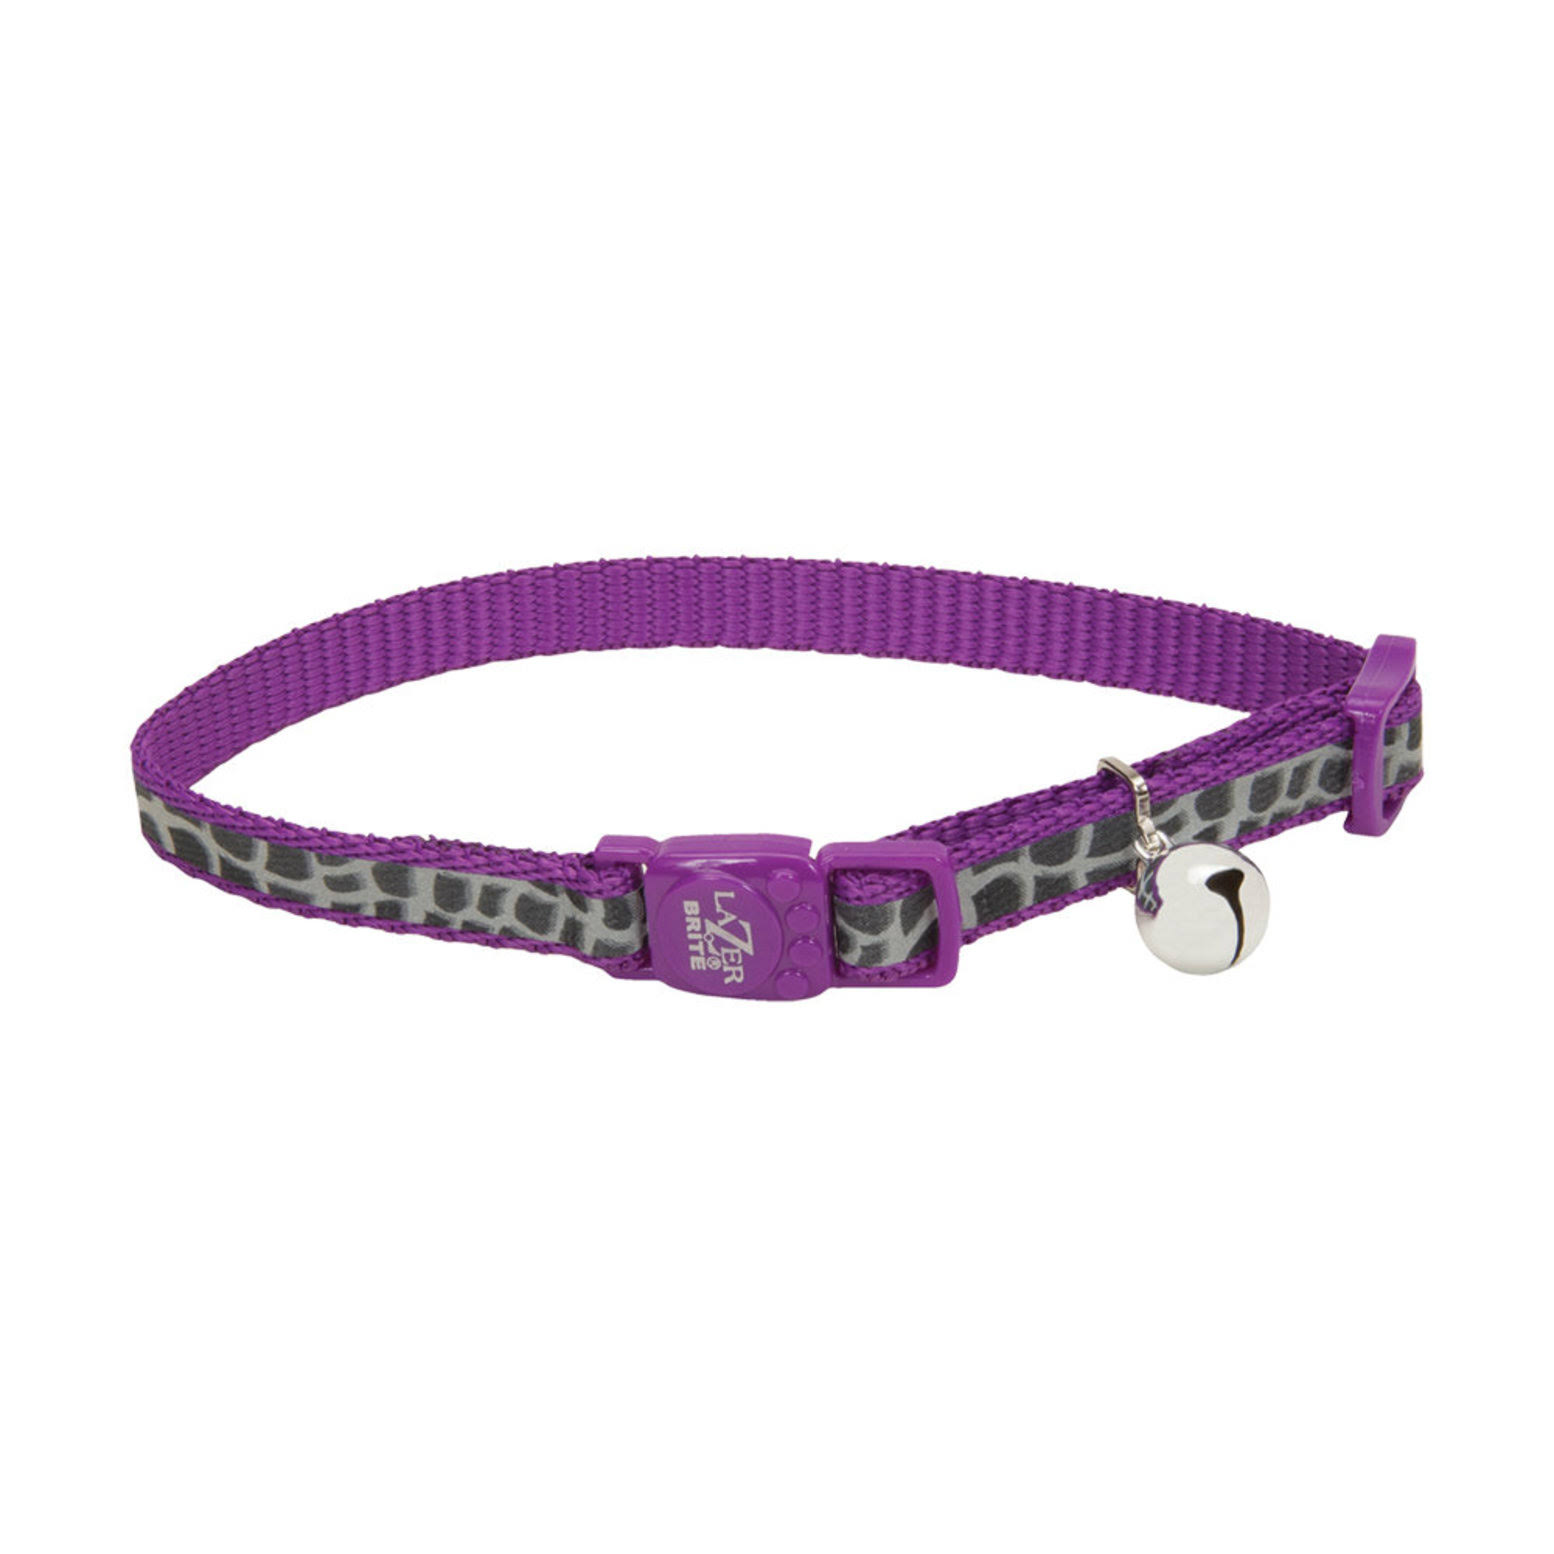 Coastal Pet Lazer Brite Reflective Adjustable Breakaway Cat Collar - Purple Animal Print